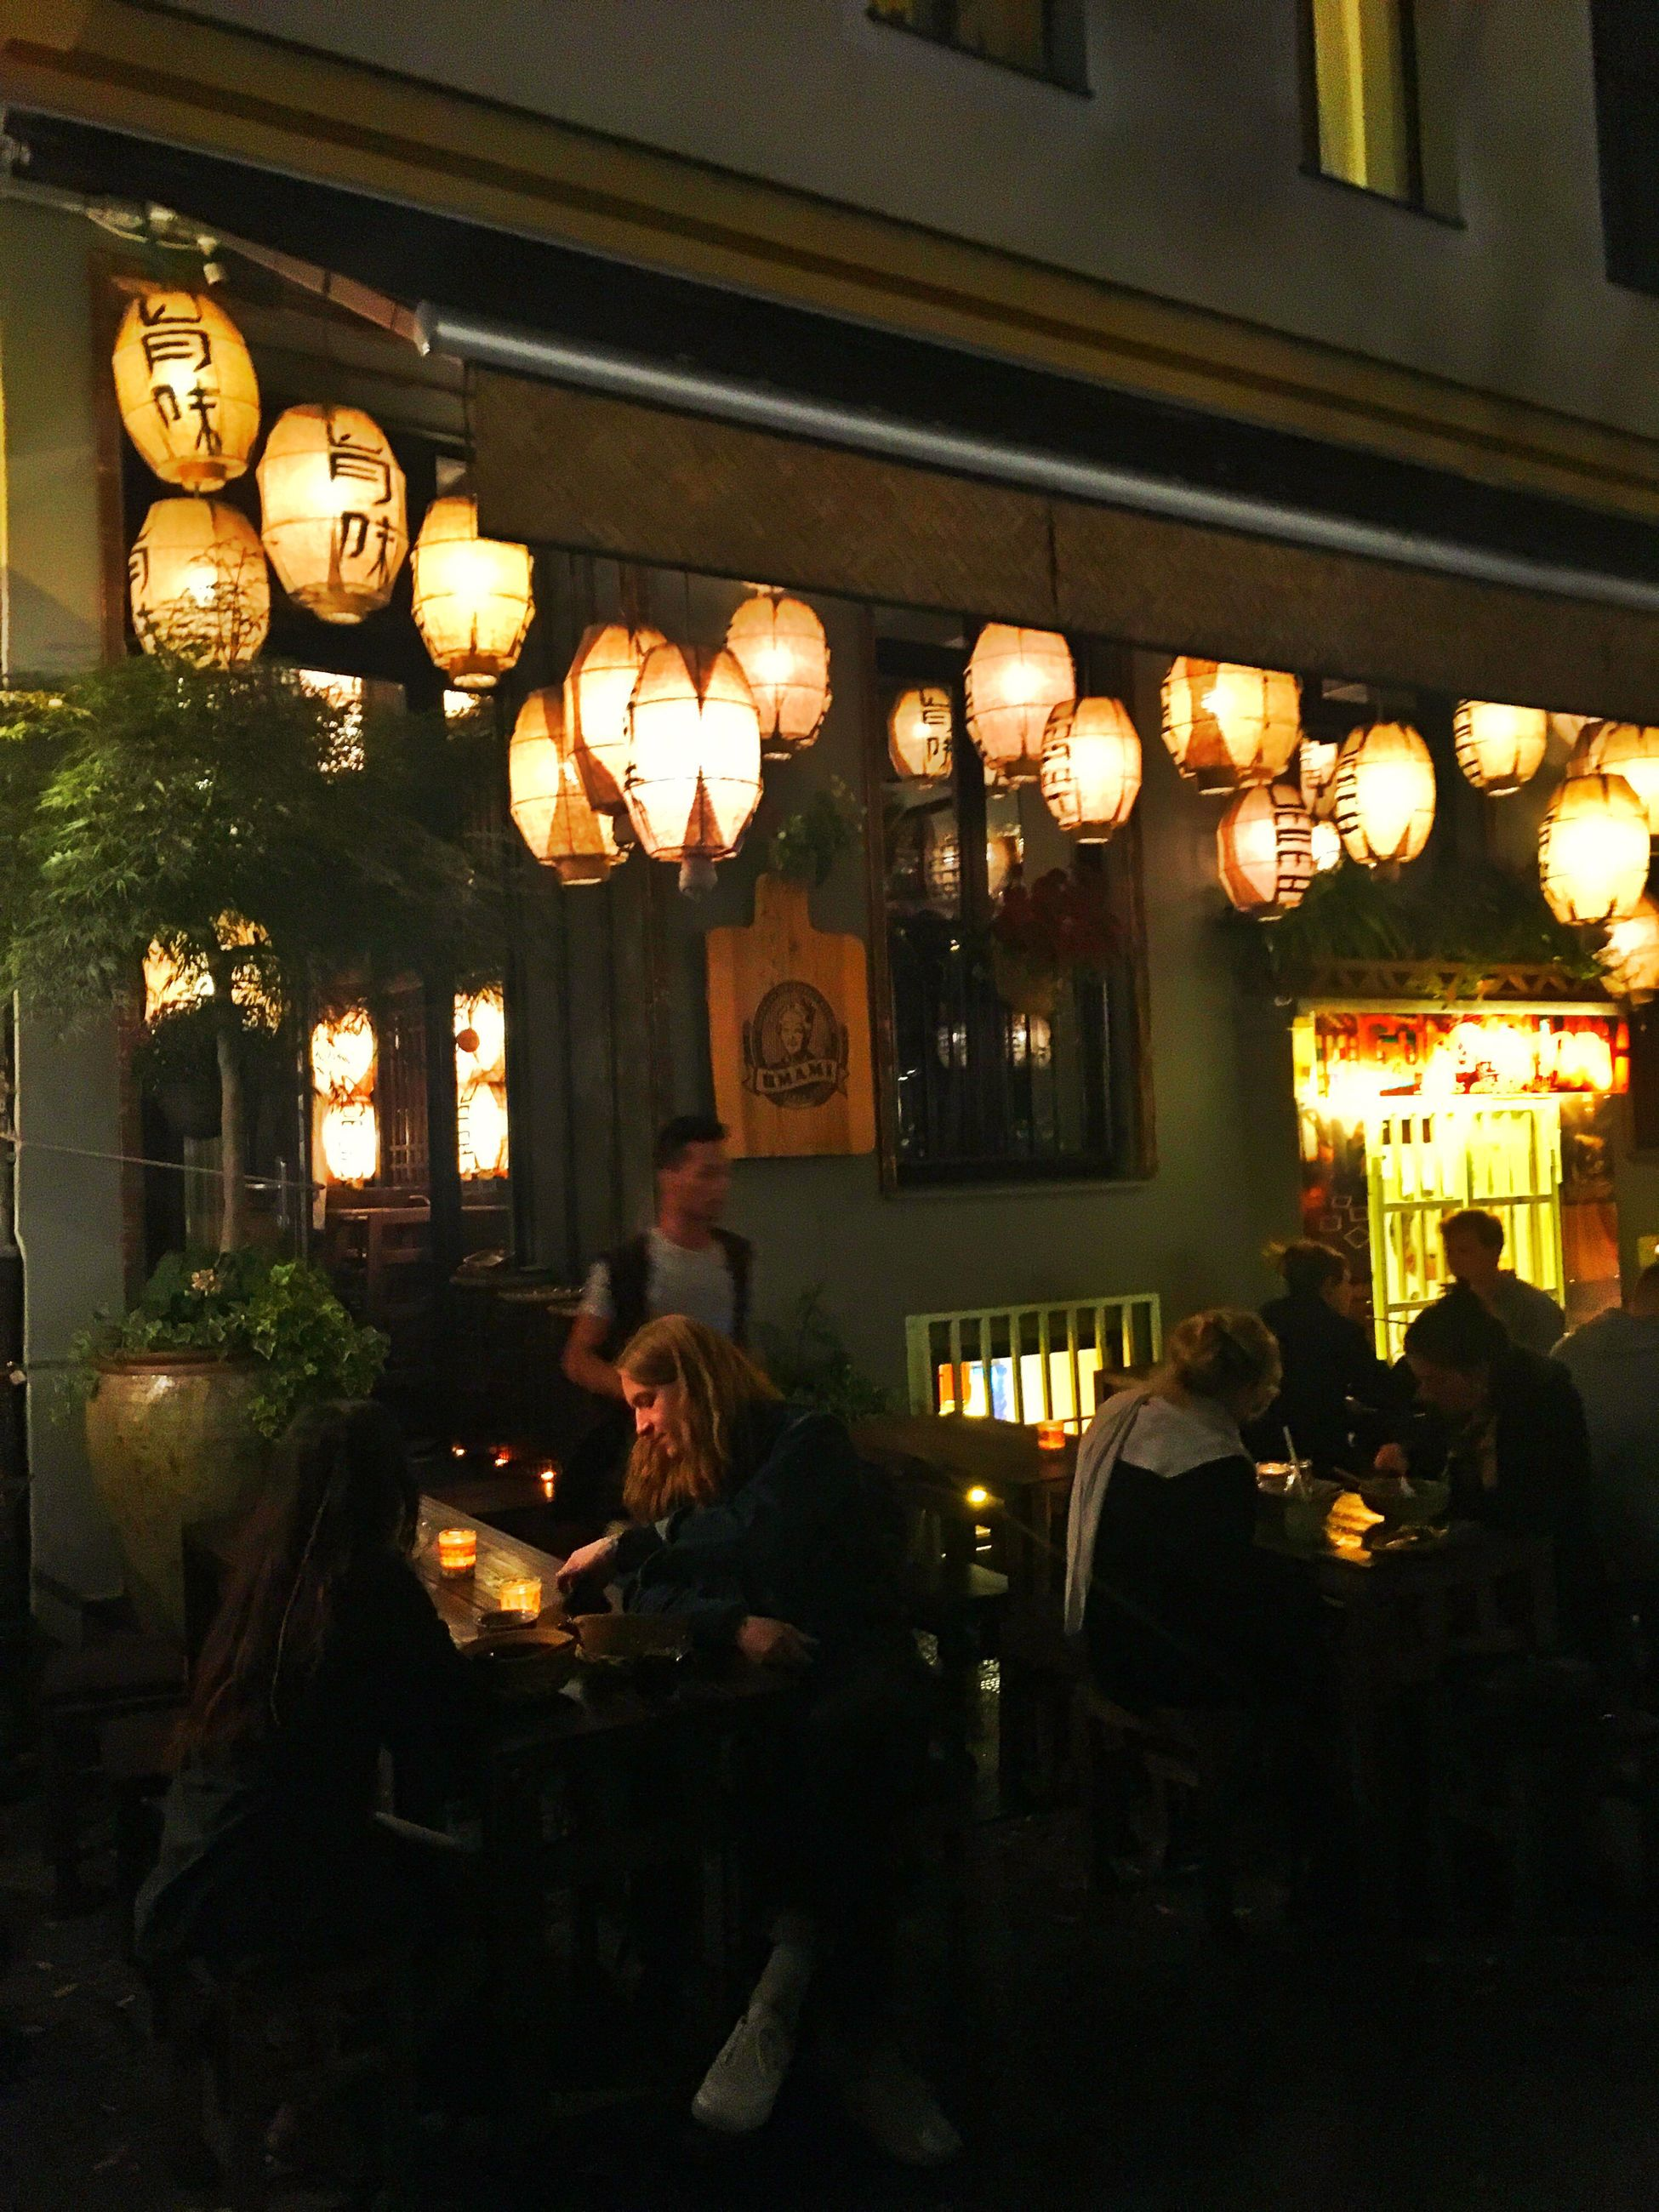 architecture, built structure, illuminated, hanging, building exterior, lantern, history